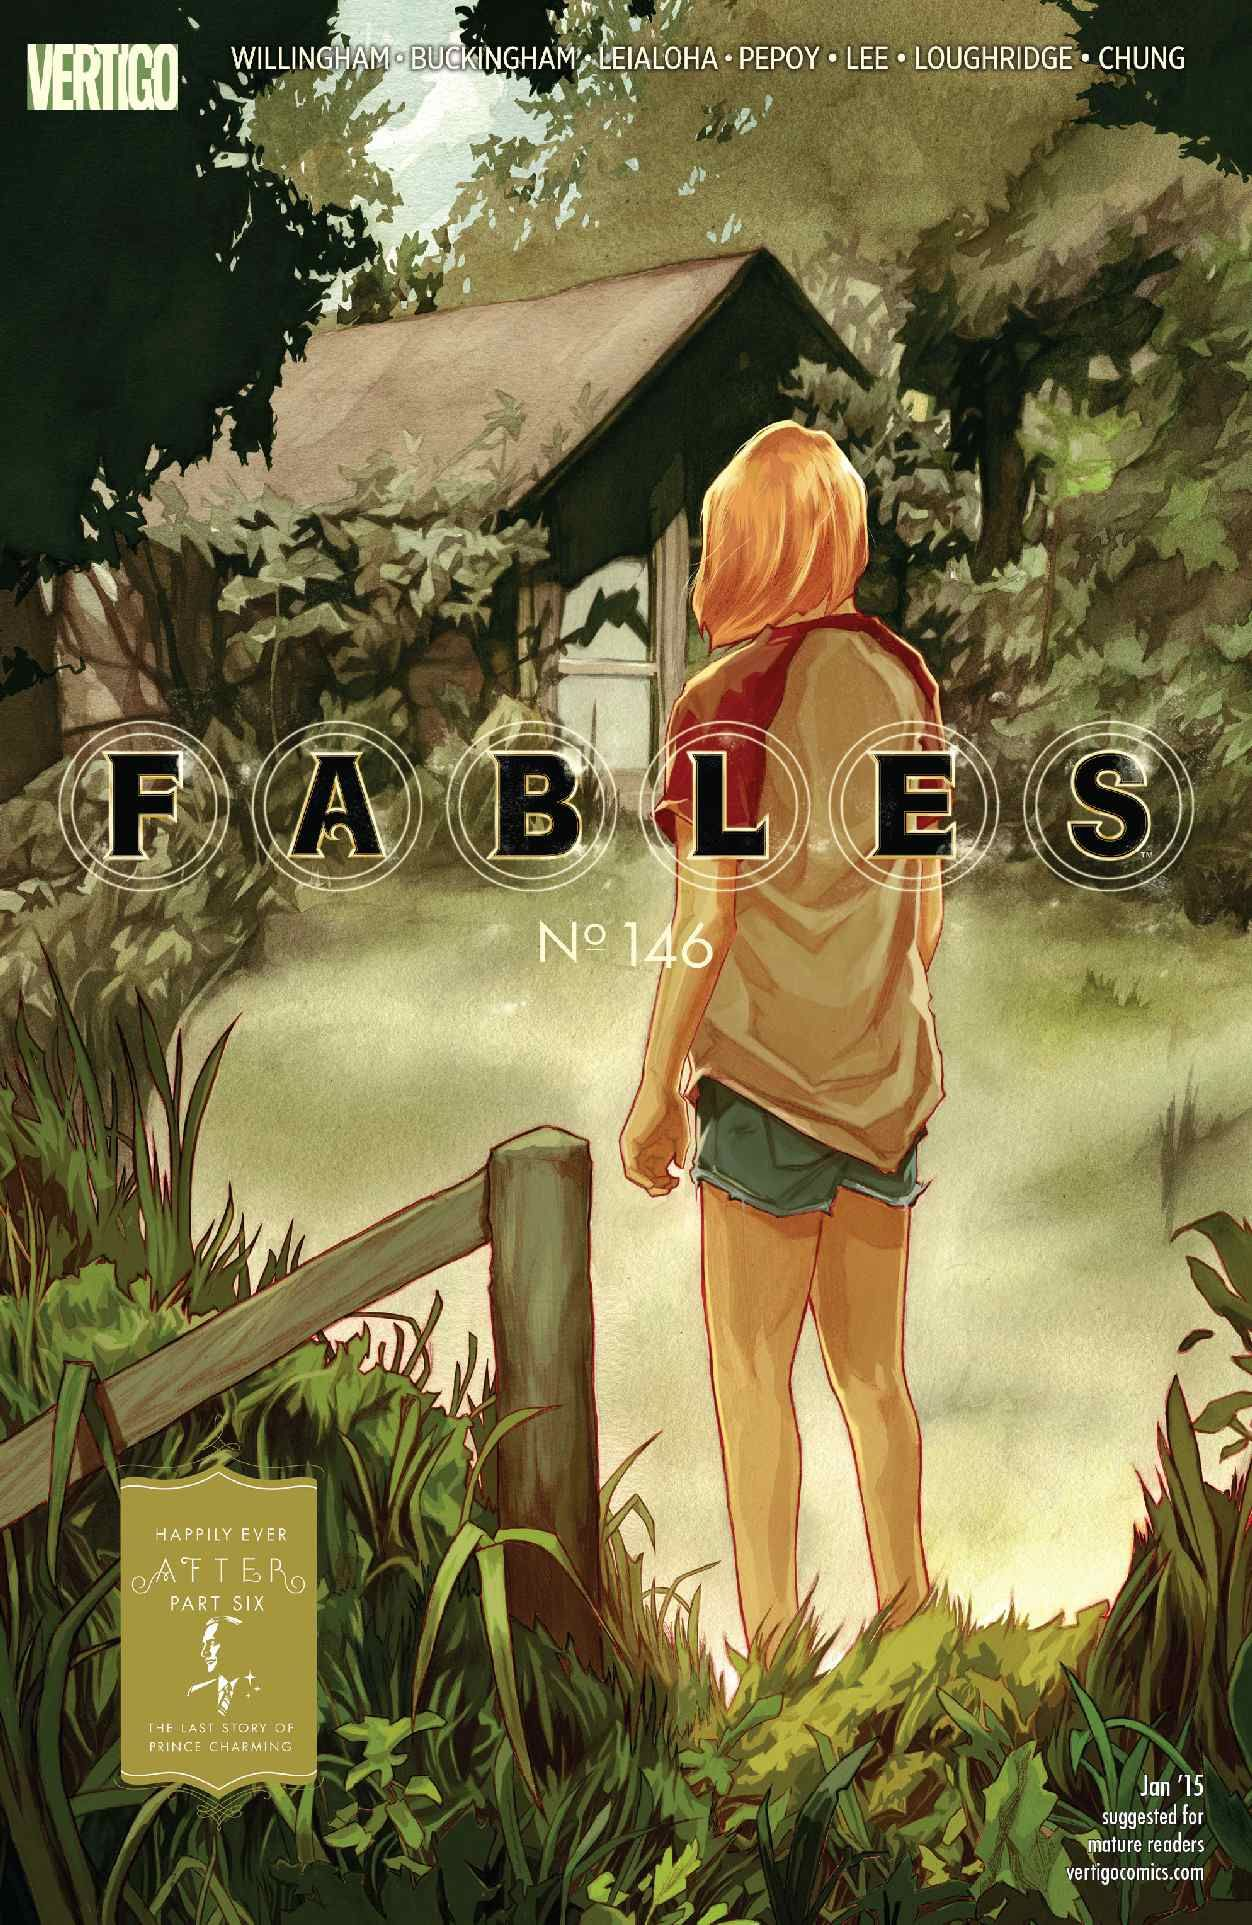 Fables #146 - Happily Ever After Part Six, The last story of Prince Charming (Jan, 2015)